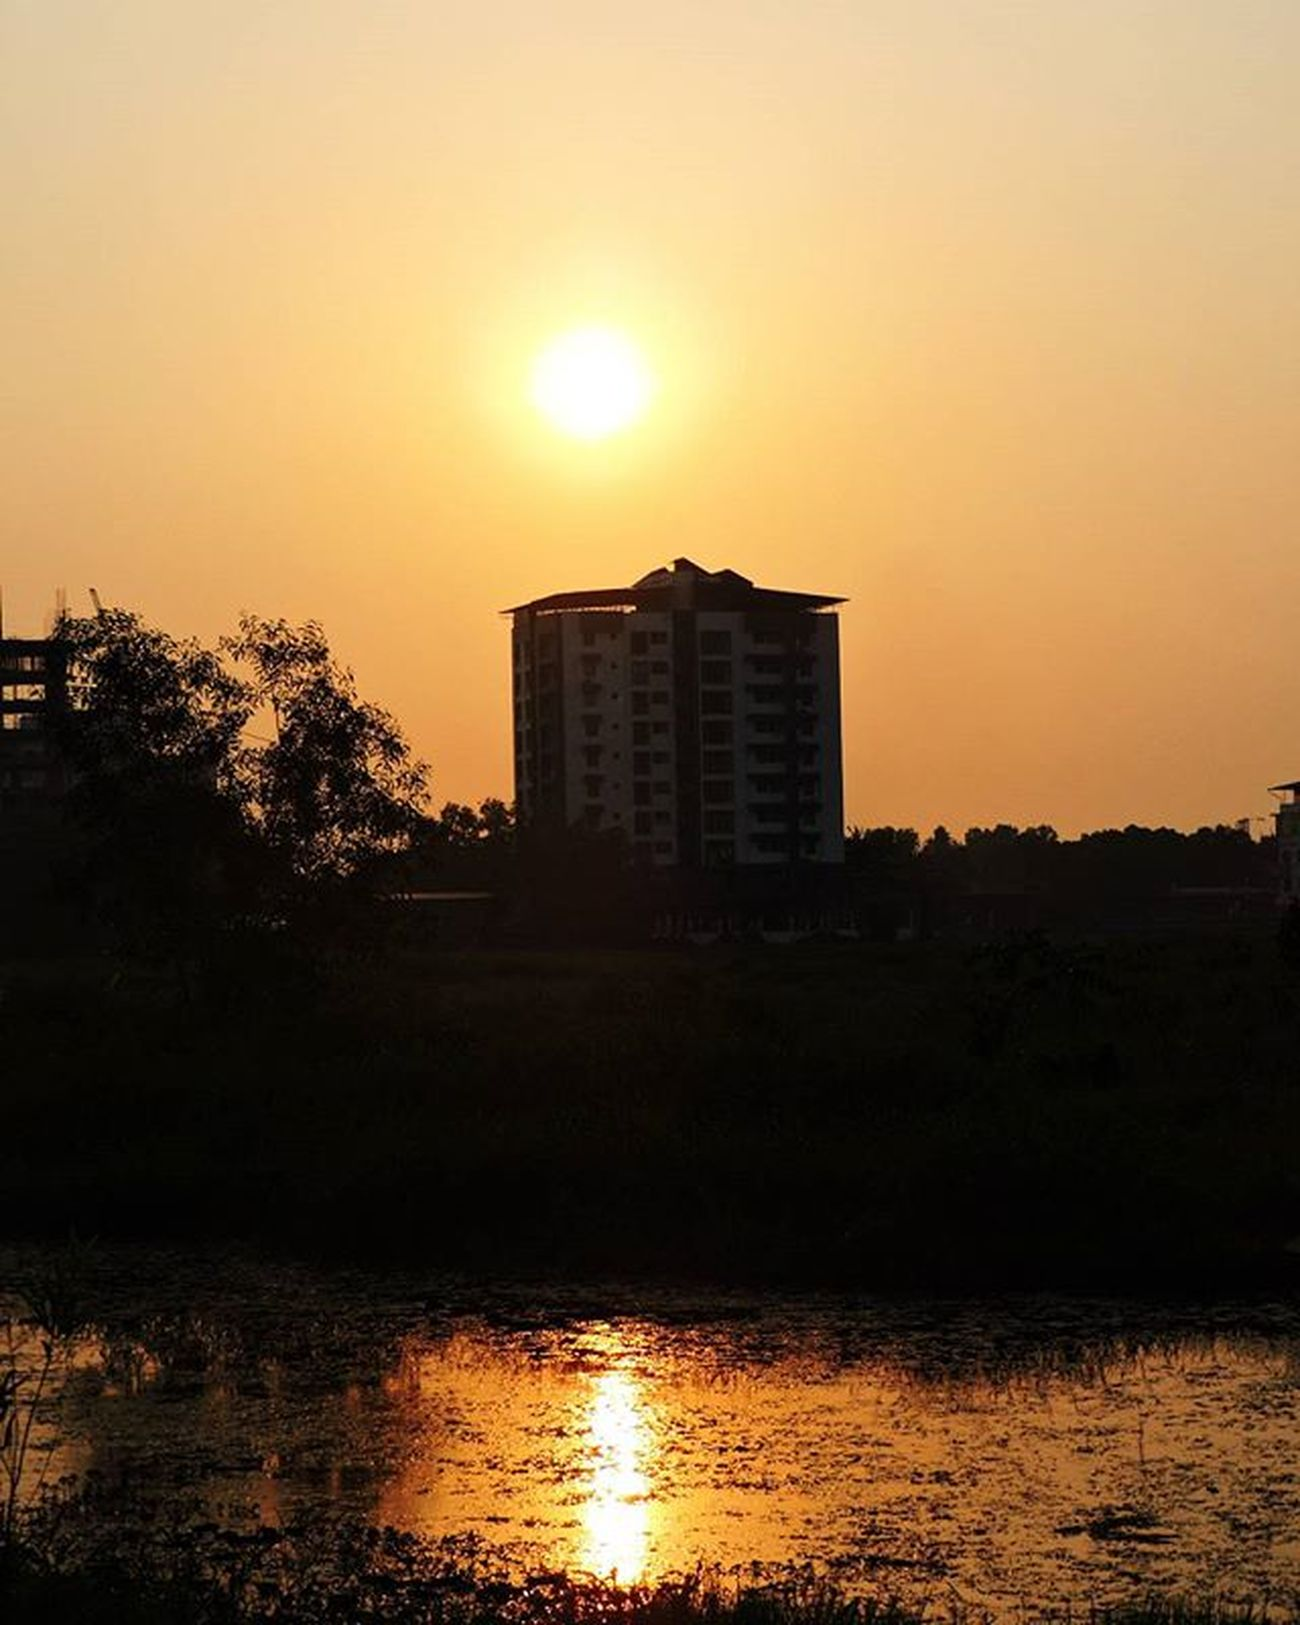 Kottayam ✌ my click Eveningclick PhotographyLove Picoftheday Photography Eve Sun Sunset Reflection Town City Water Kottayam Nikon Instagraphy Instalove Instaeve